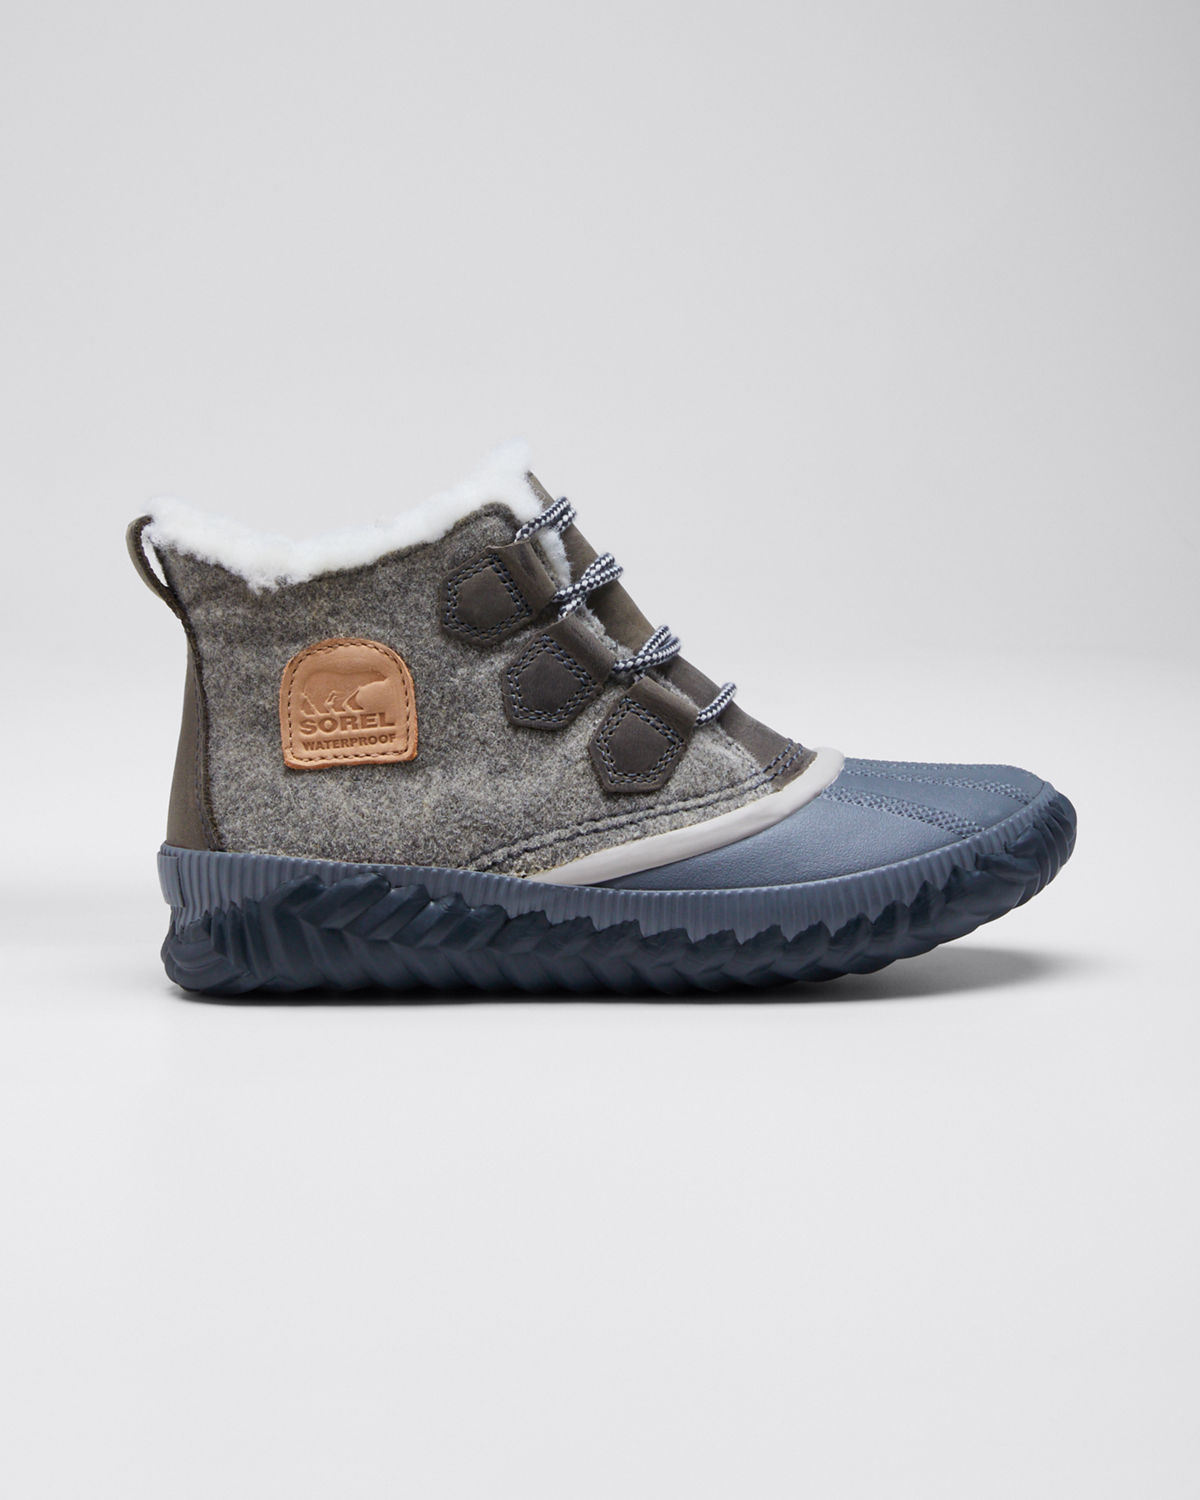 Sorel Boots OUT-N-ABOUT PLUS WATERPROOF DUCK BOOTS